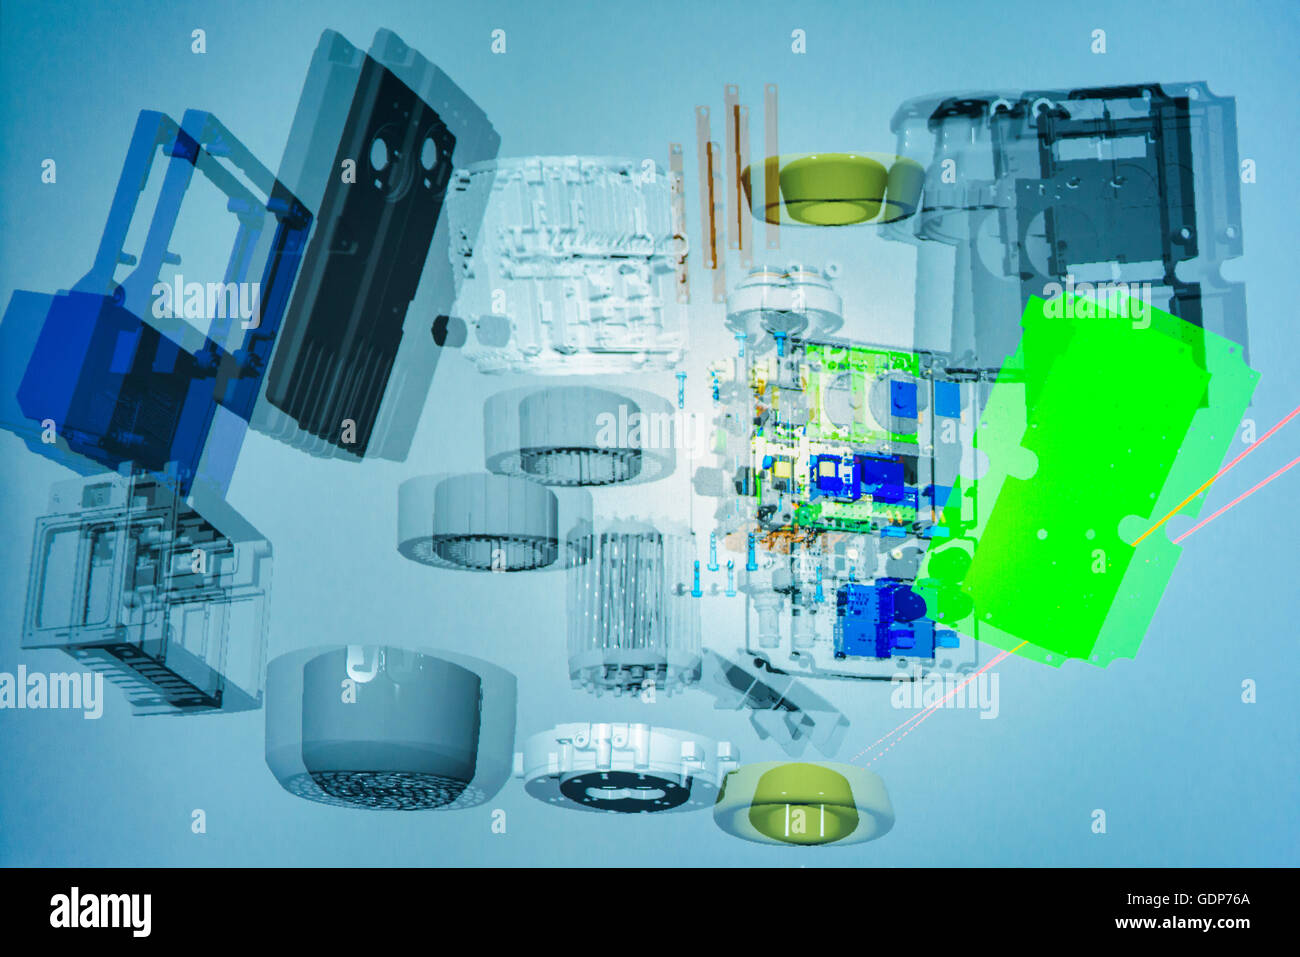 Component part 3D graphic in virtual reality suite - Stock Image